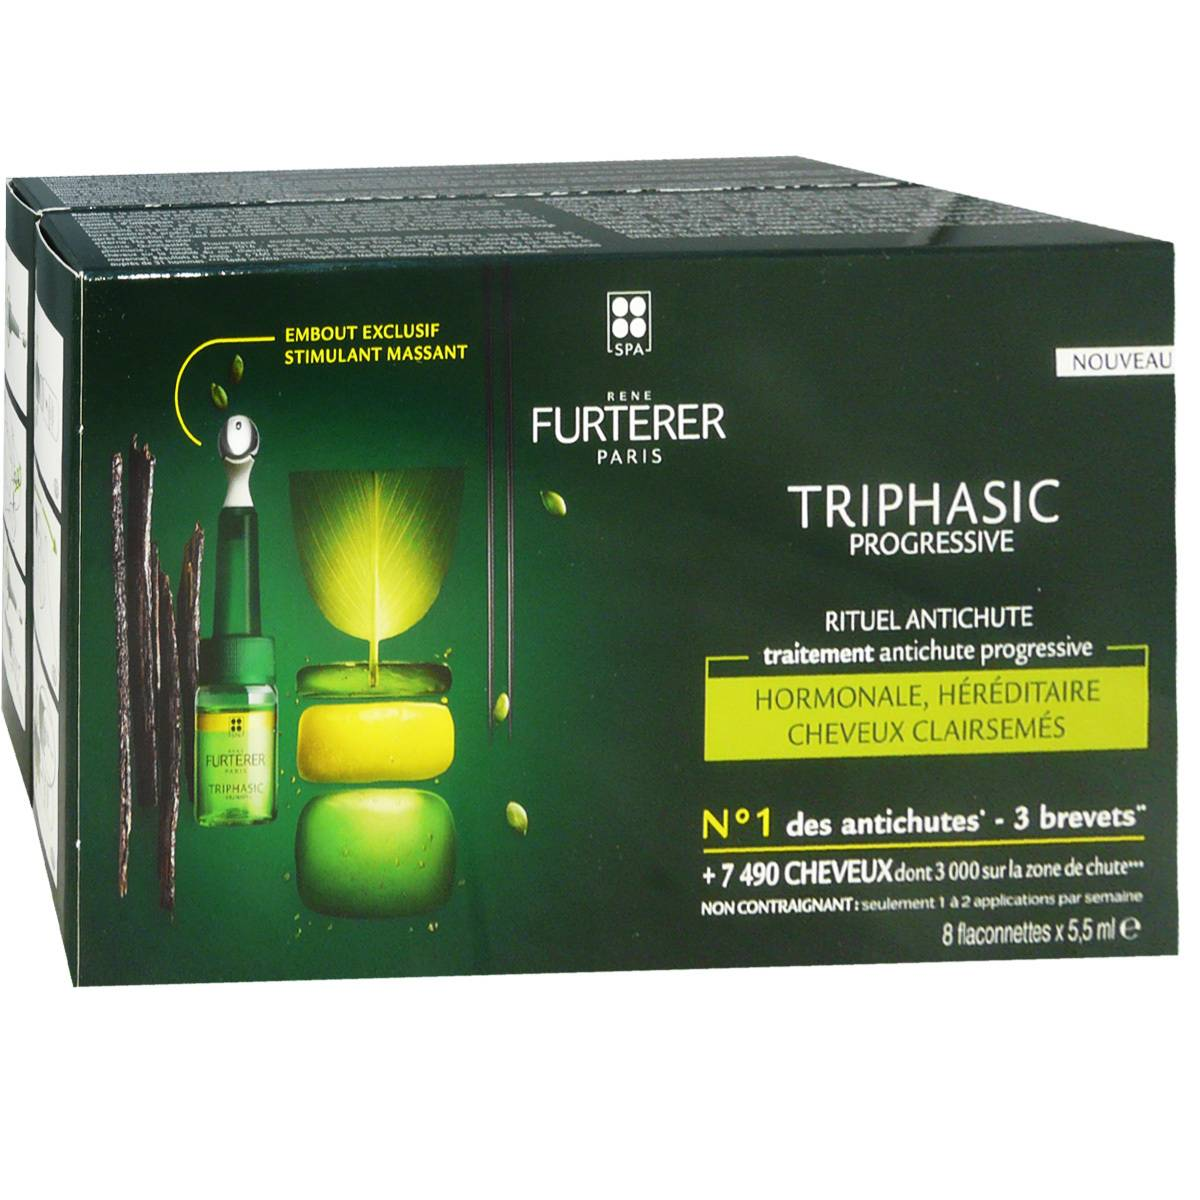 Rene furterer triphasic progressive rituel anti-chute